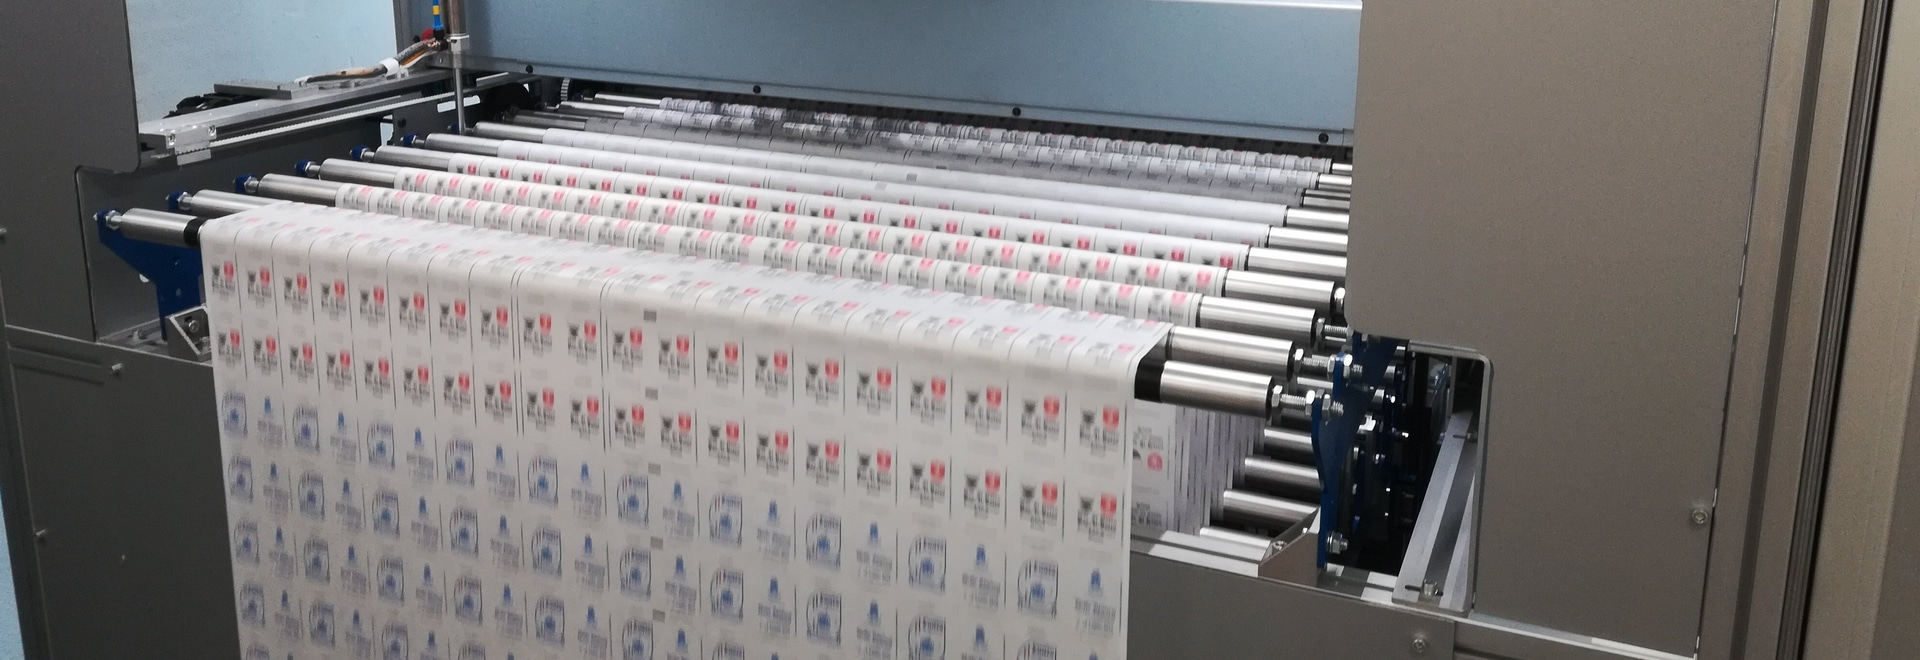 Novarese Zuccheri of Italy uses this digital press to customize single-serve sugar packets.